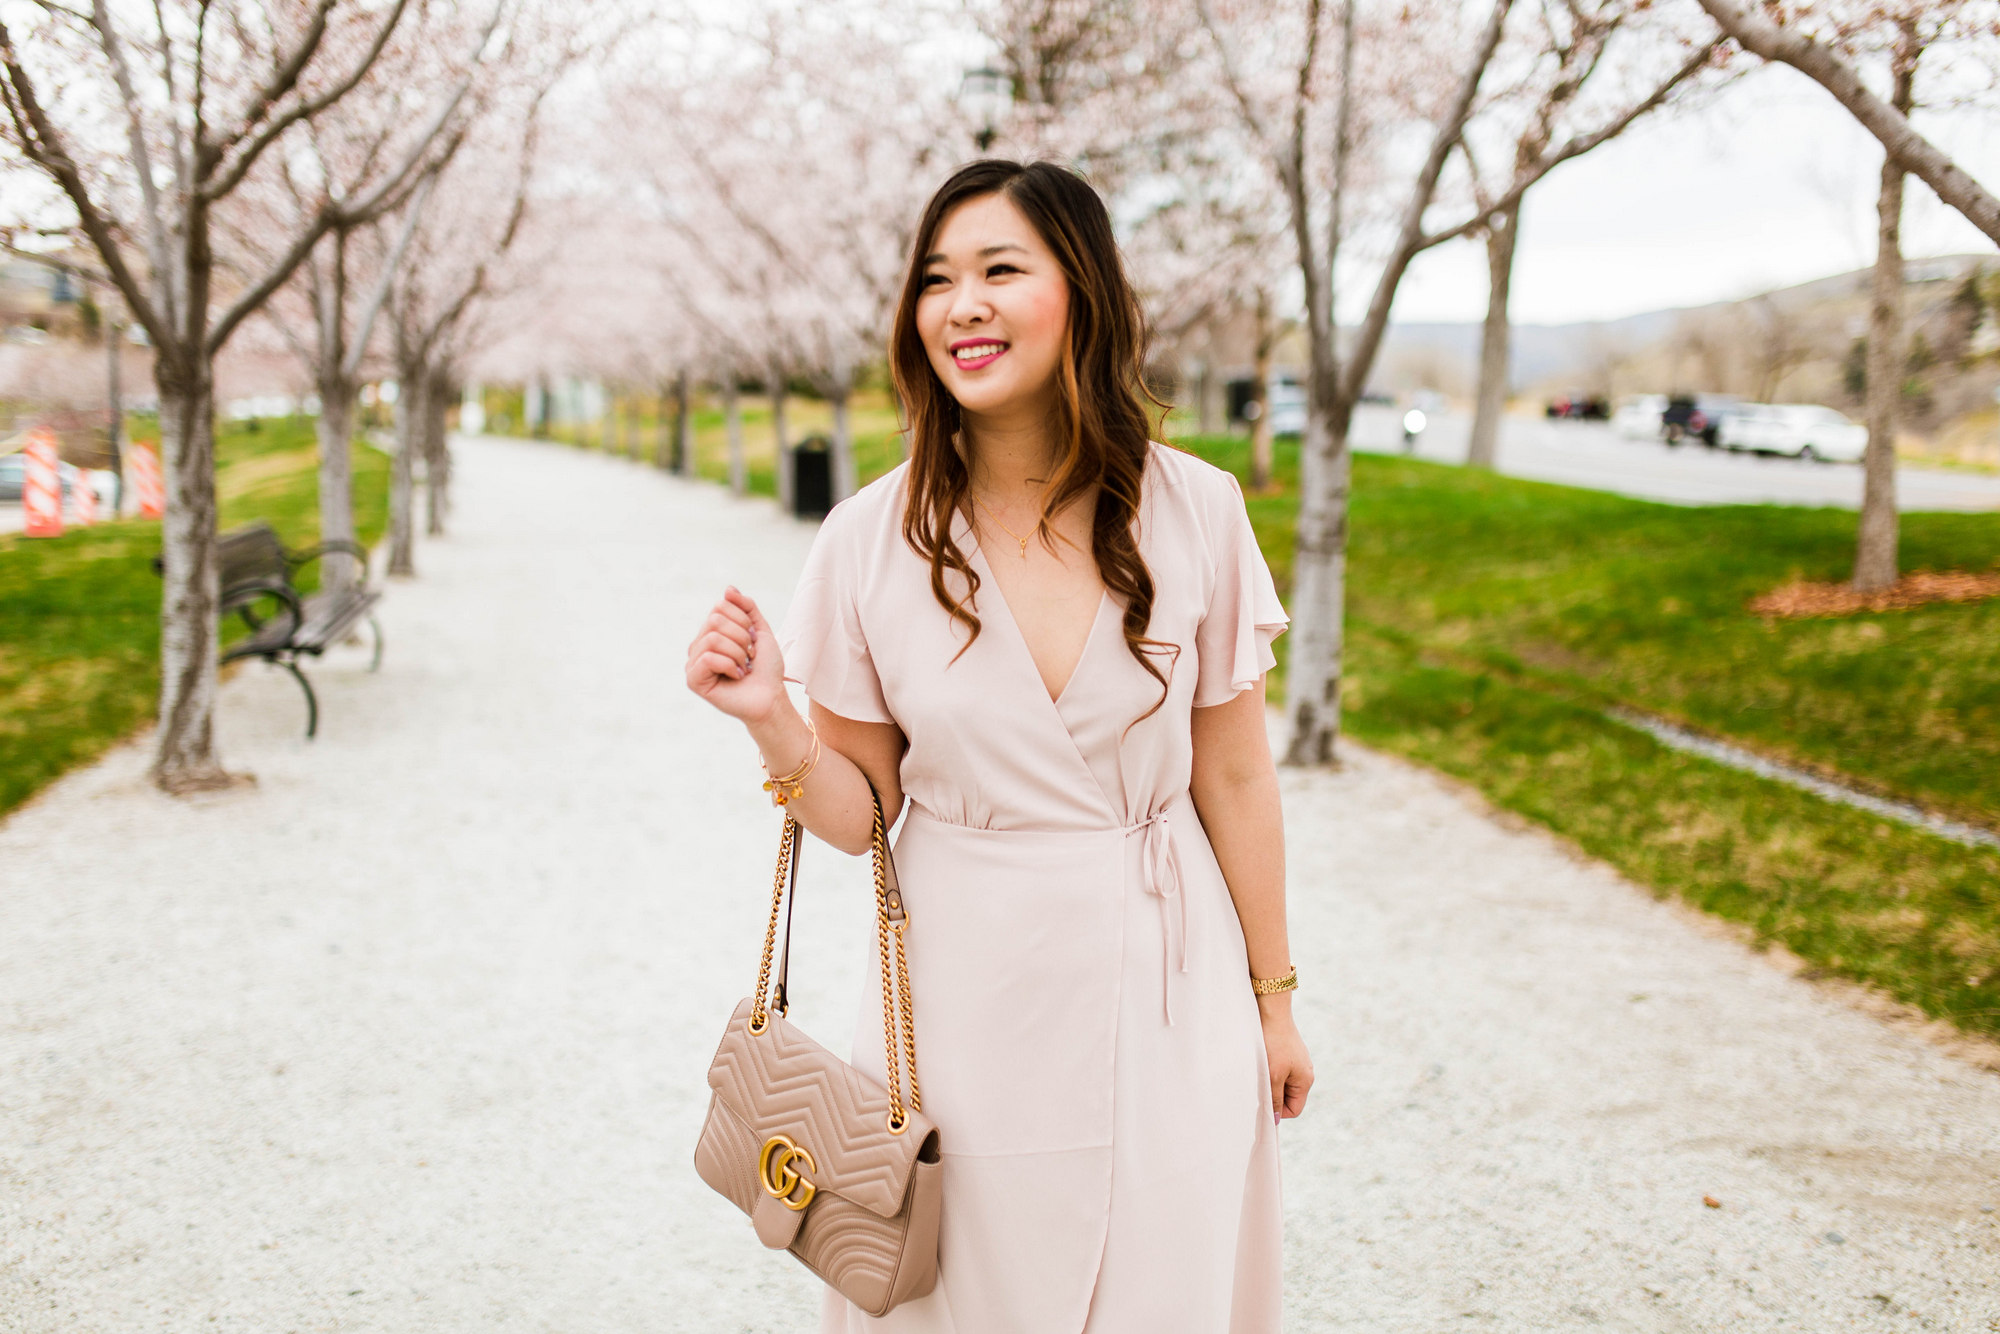 outfit 1 classic blush wrap dress